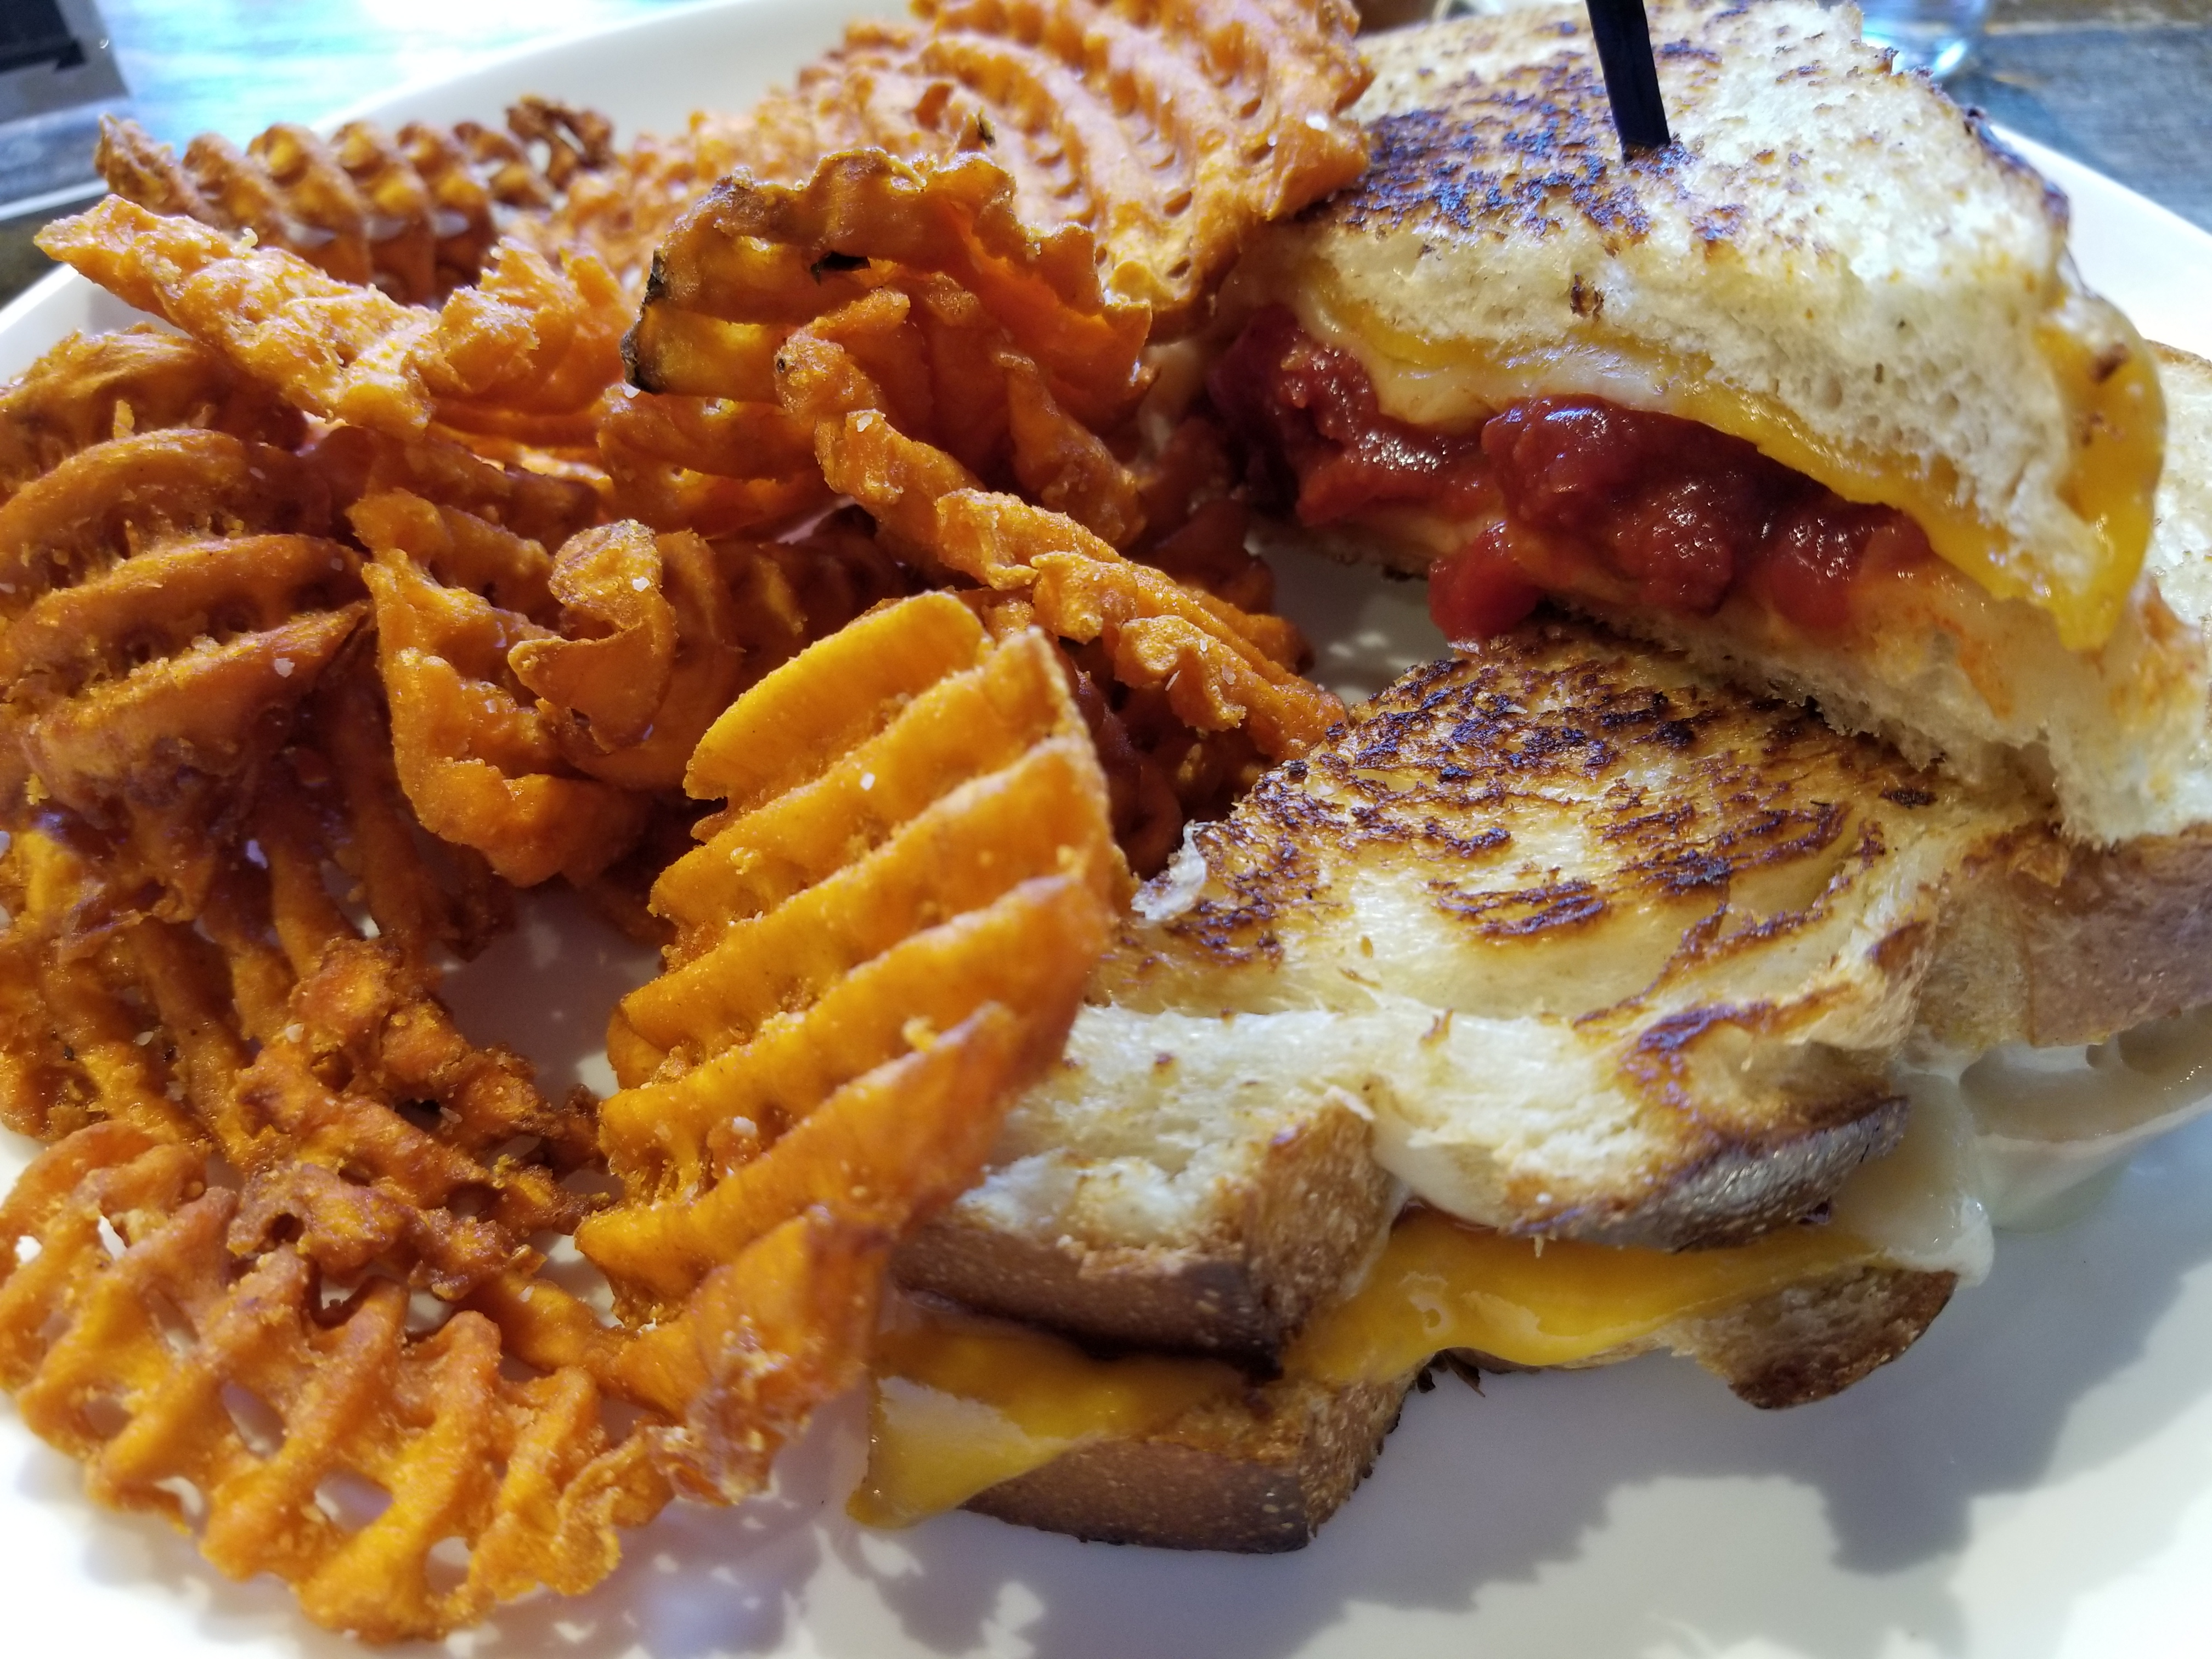 The Adult Grilled Cheese with Tomato Jam and Sweet Potato Waffle Fries